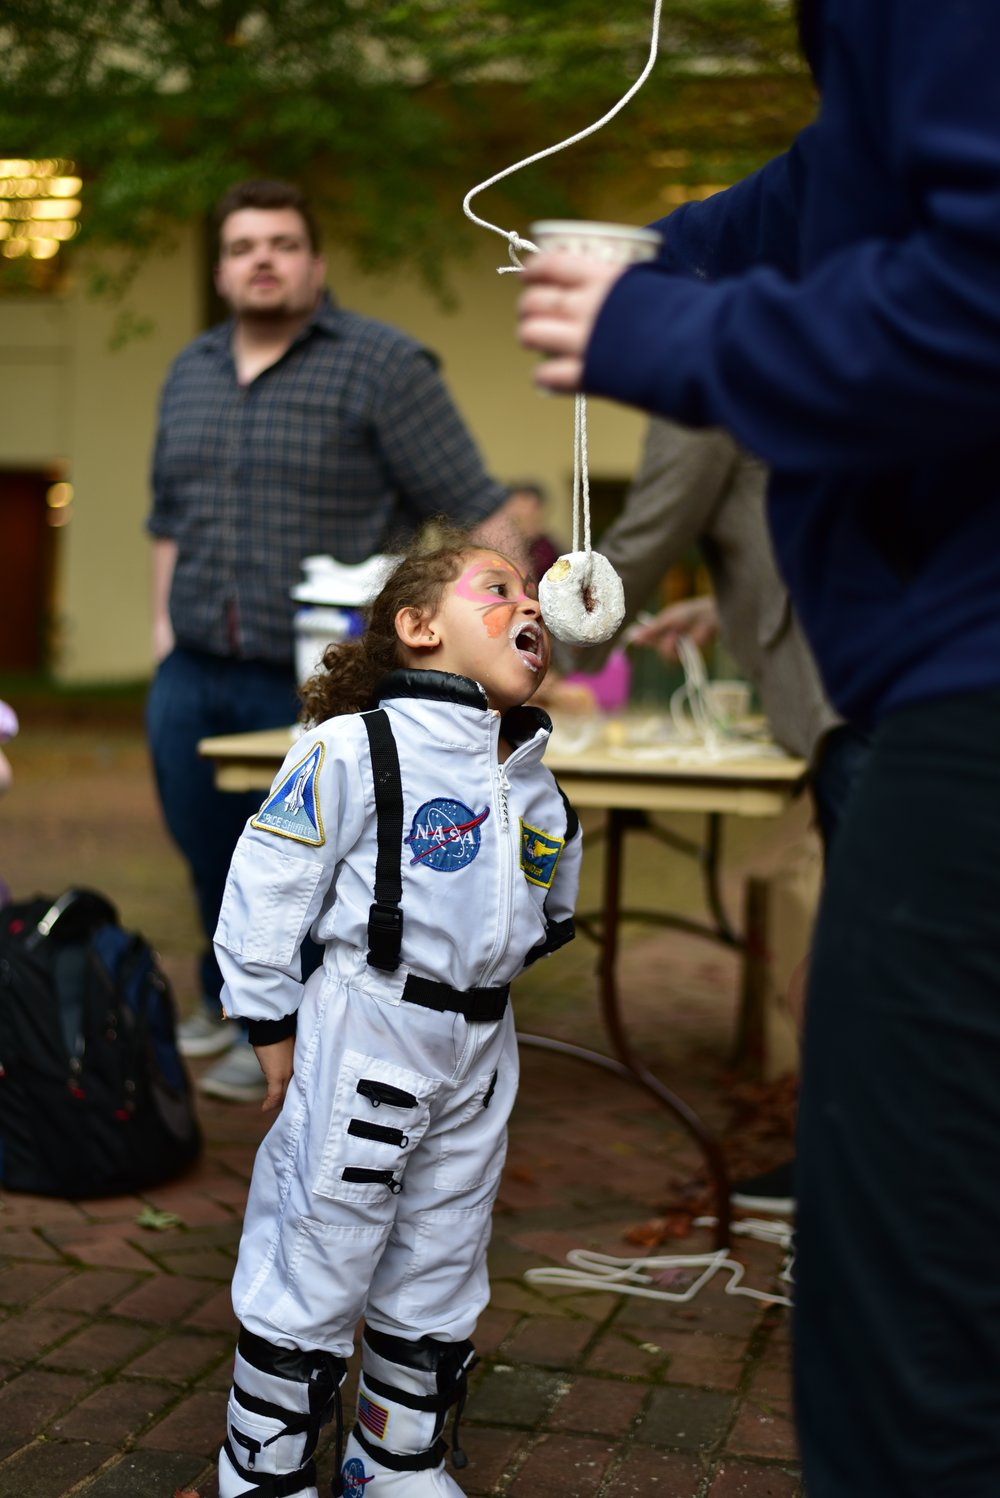 Cdr. Emma Ospina trains with a donut in anticipation of a zero gravity environment. Photo courtesy of Eric Hall.